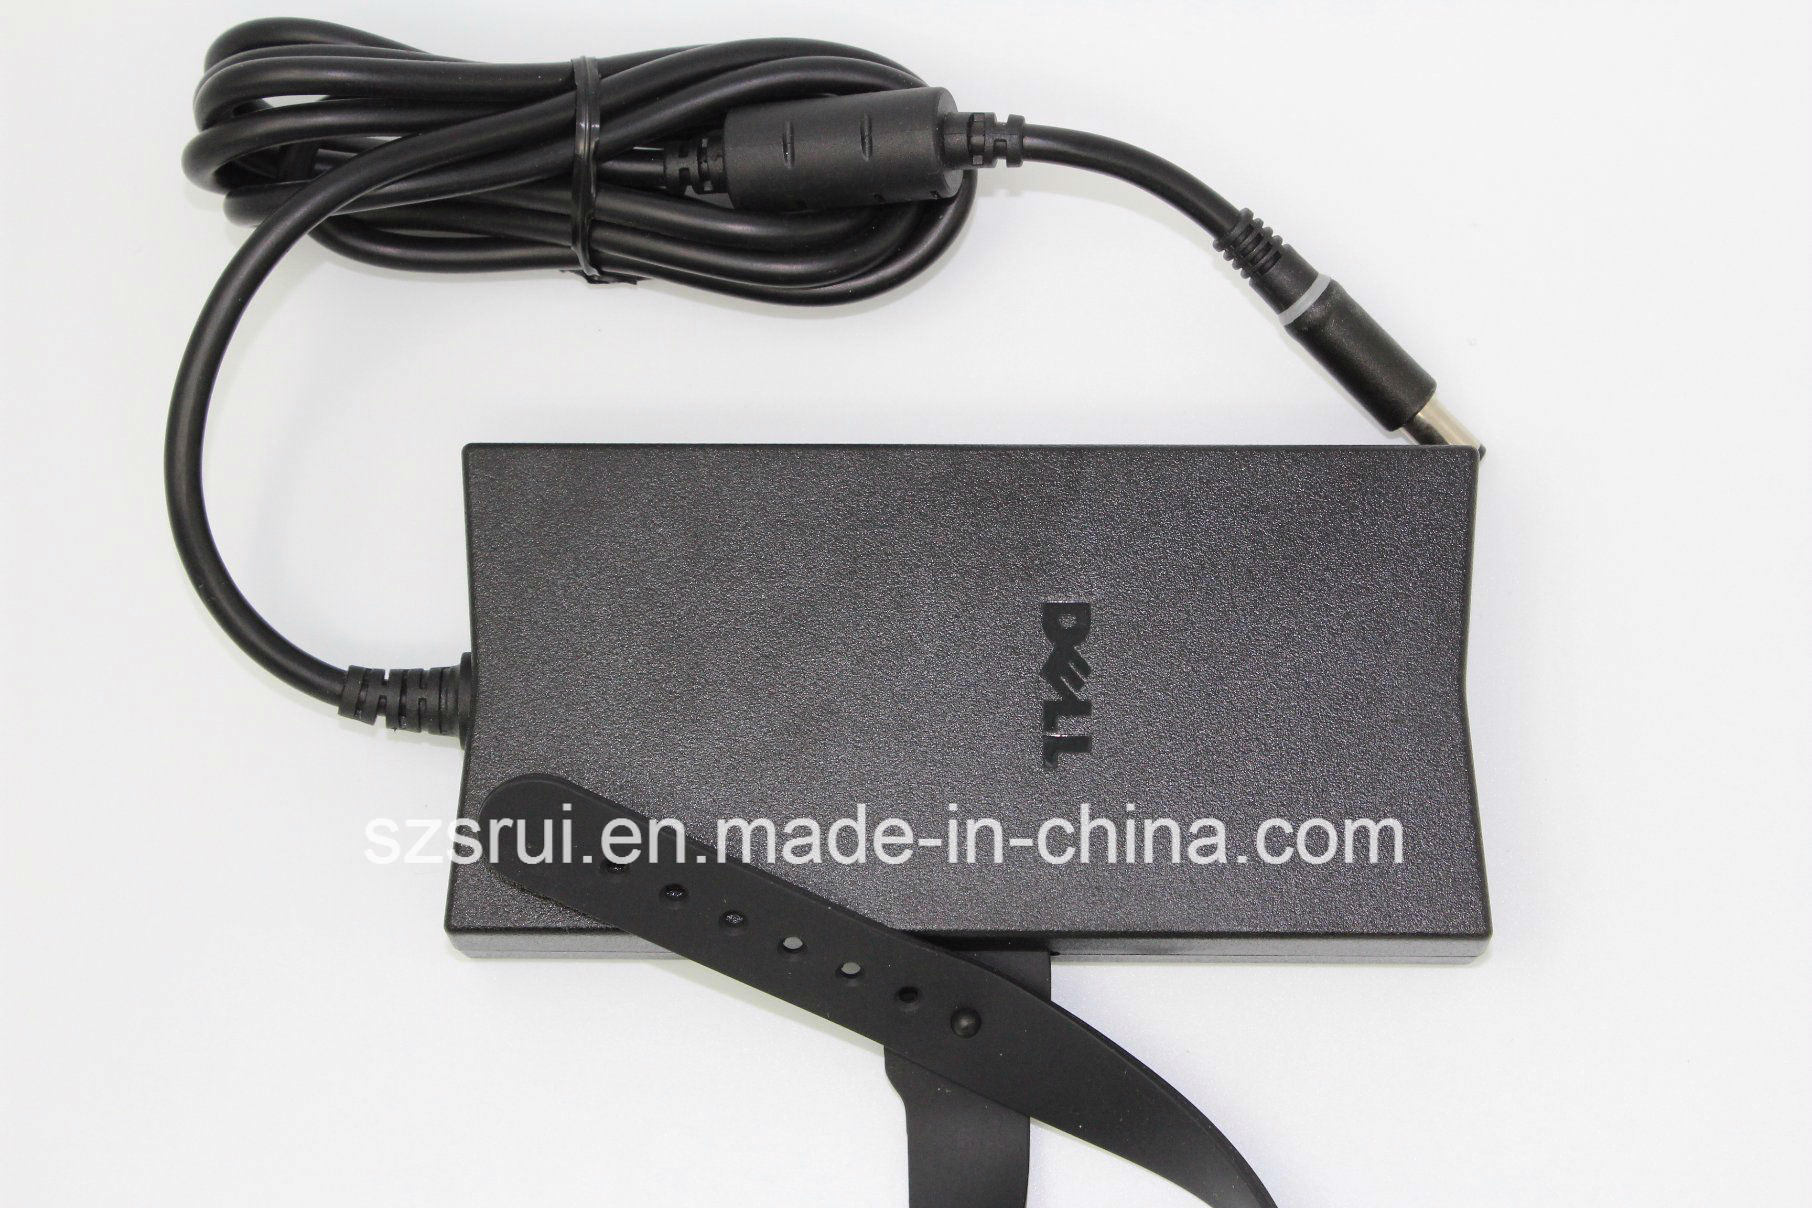 Laptop AC/DC Adapter for DELL 150W 19.5V 7.7A Power AC Adapter PA-510m